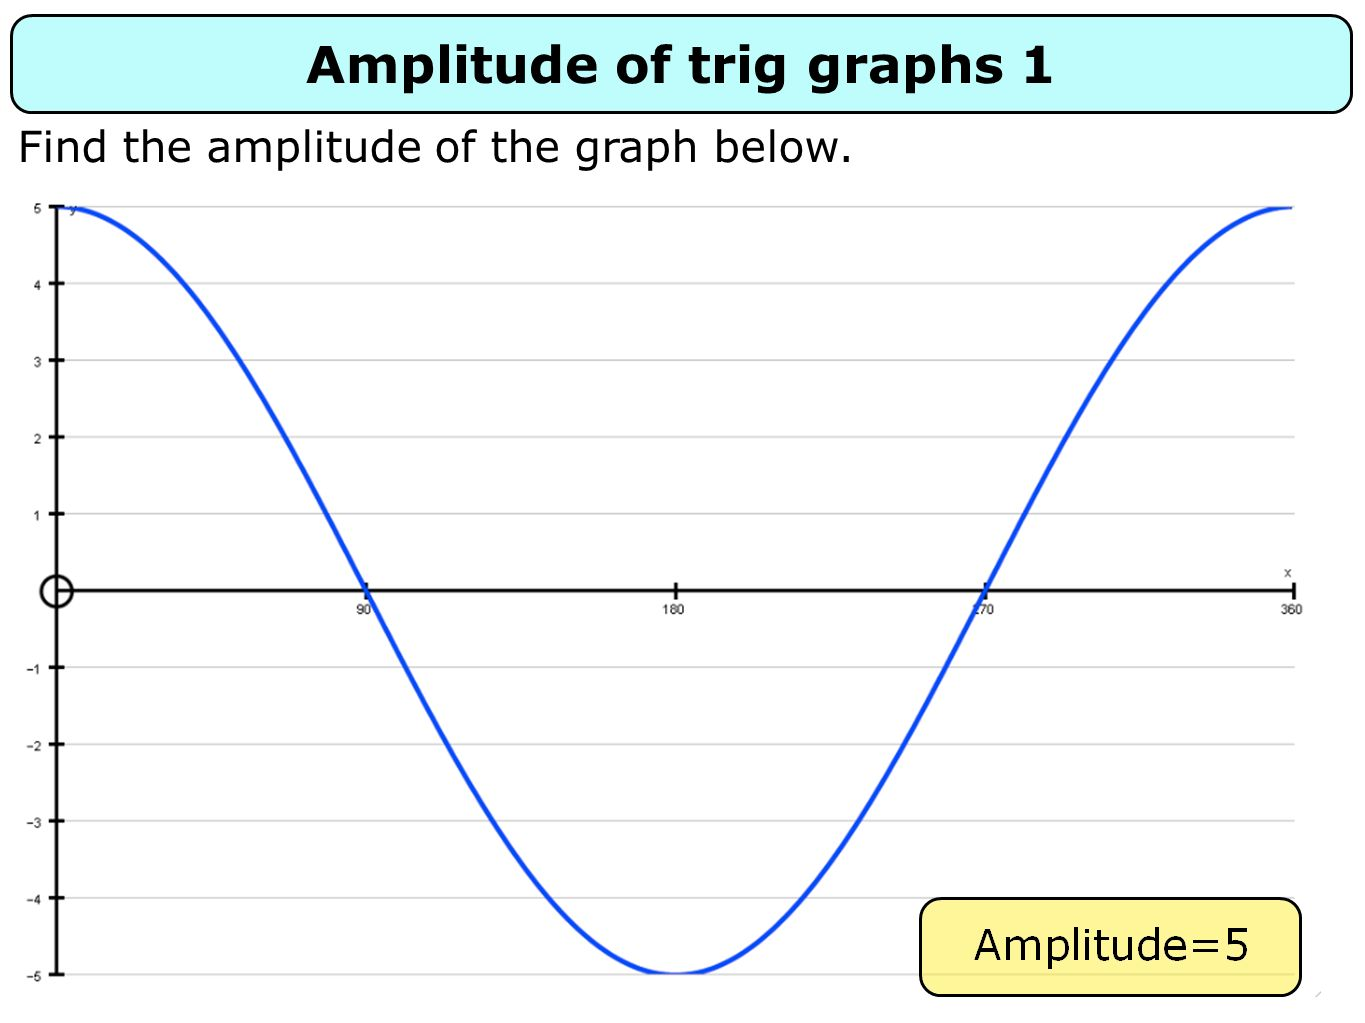 Amplitude of trig graphs 1